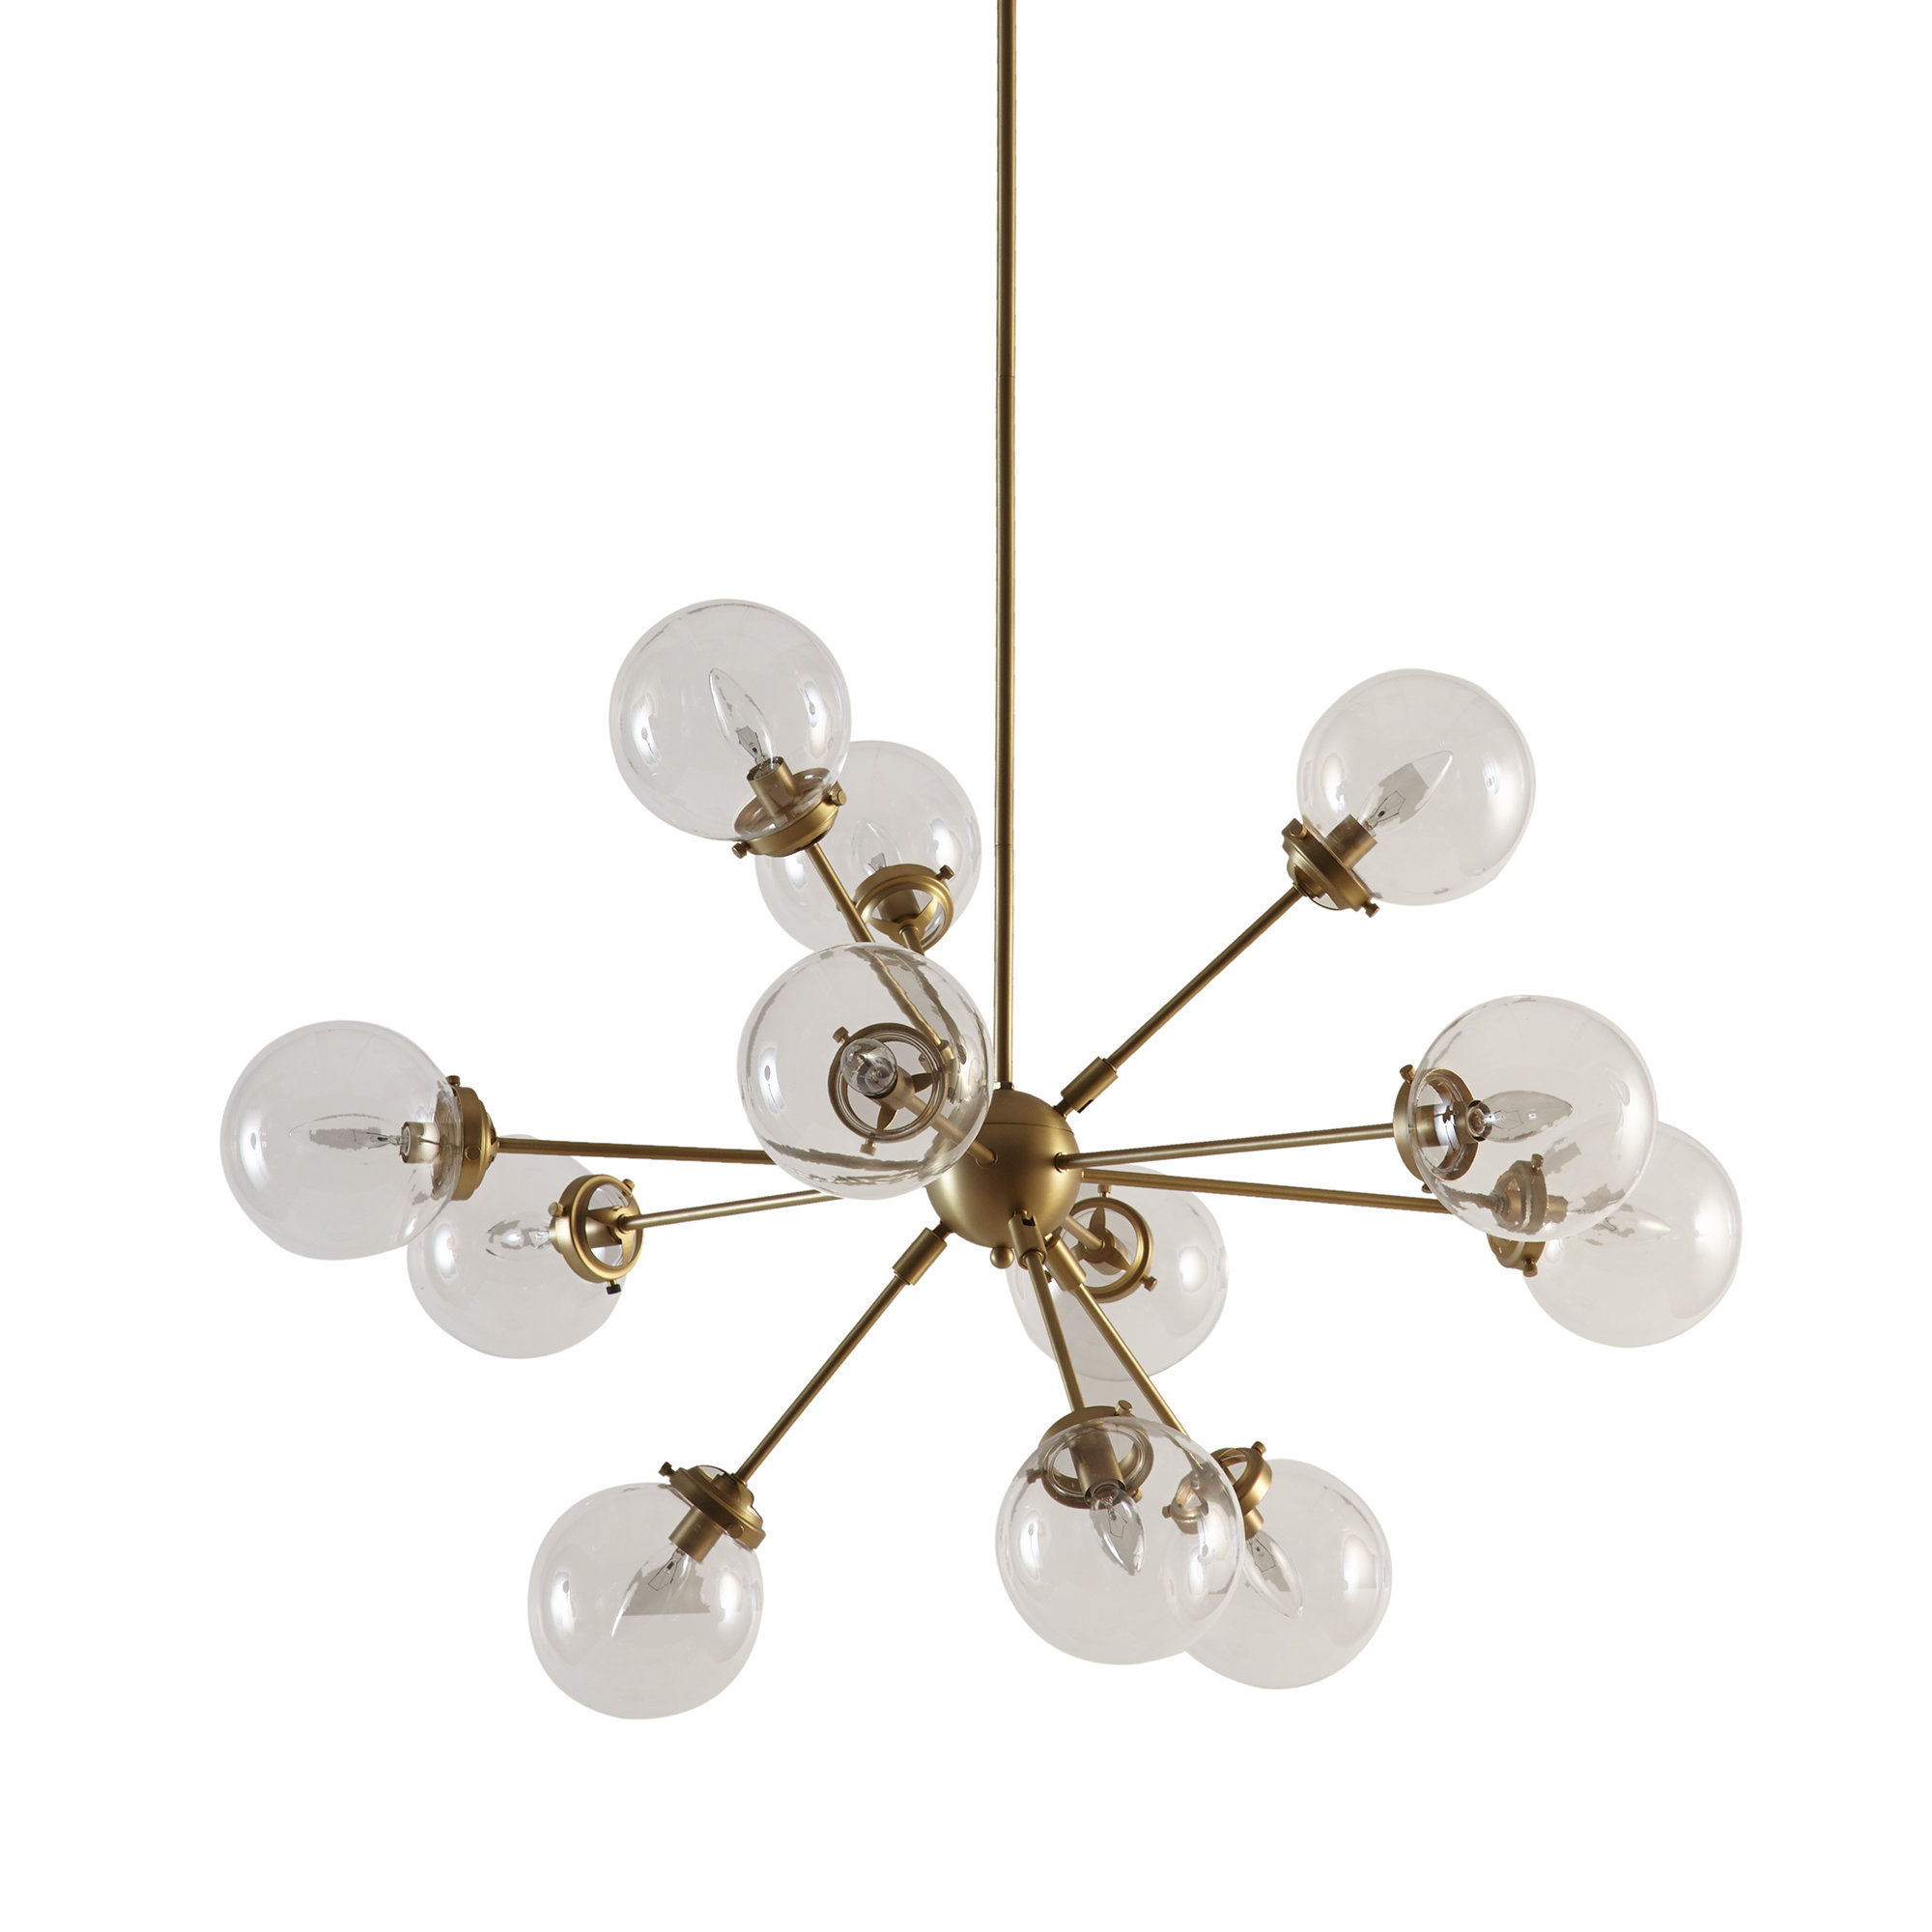 Nelly 12 Light Sputnik Chandeliers Within Preferred Asher 12 Light Sputnik Chandelier (View 19 of 25)